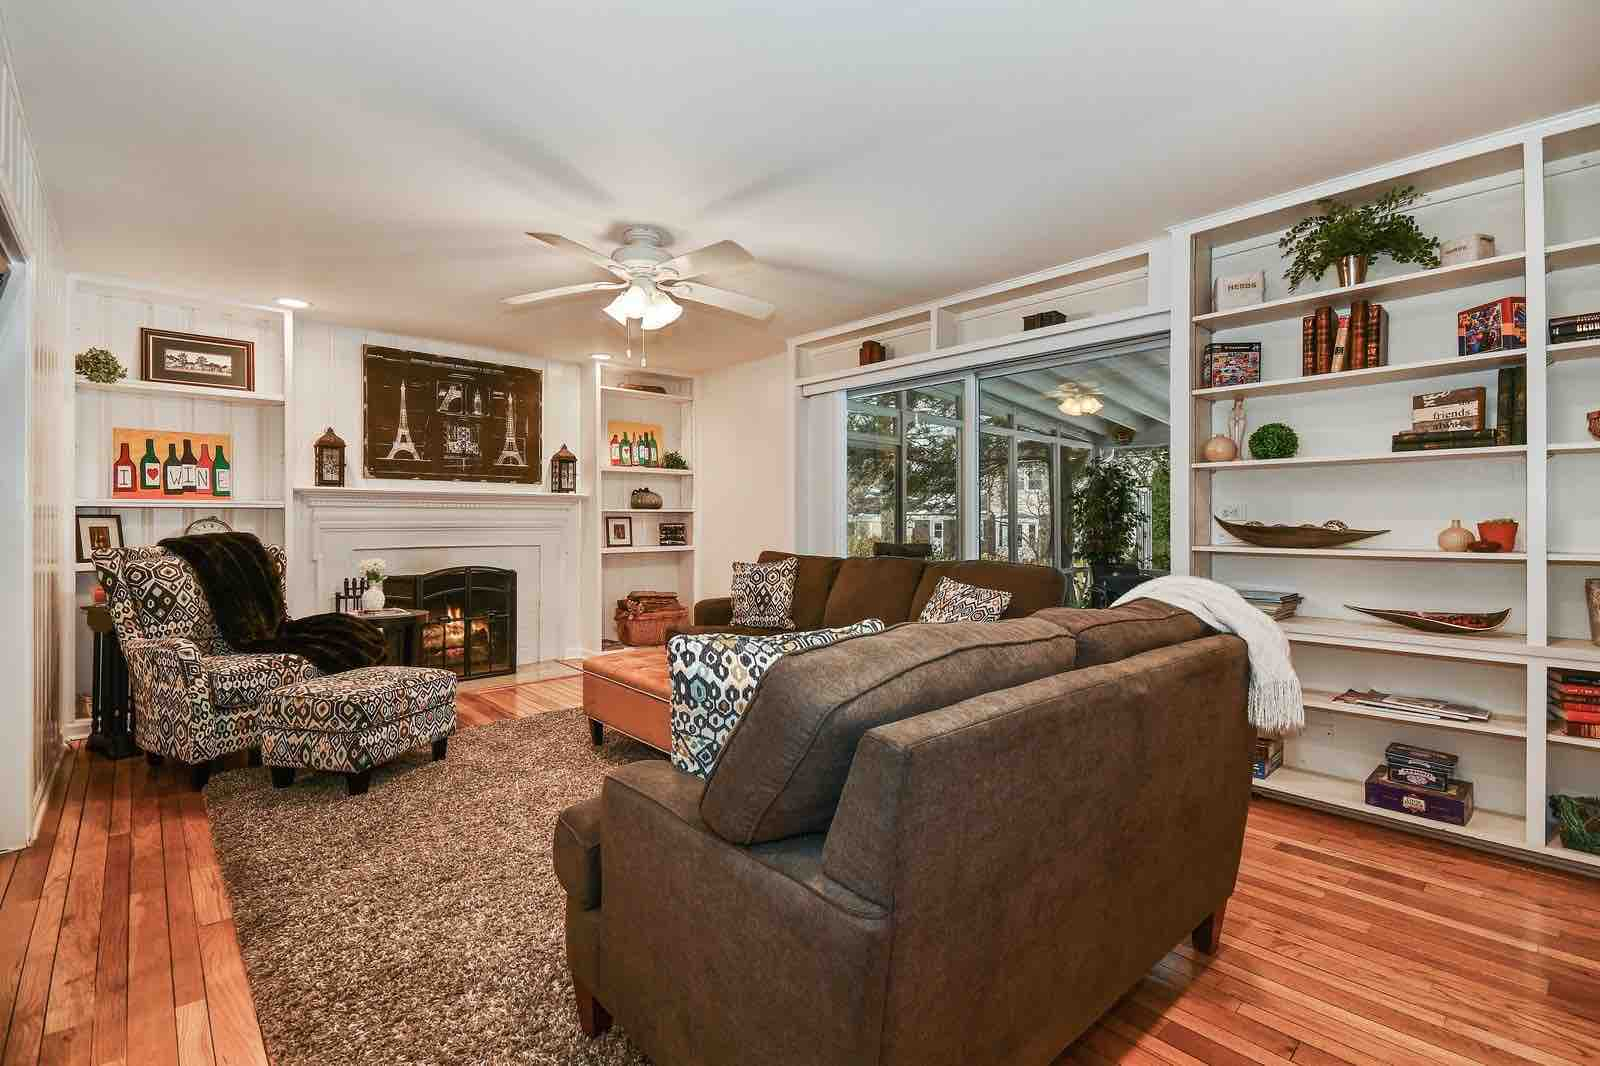 VHT_stagedtosell_familyroom_before